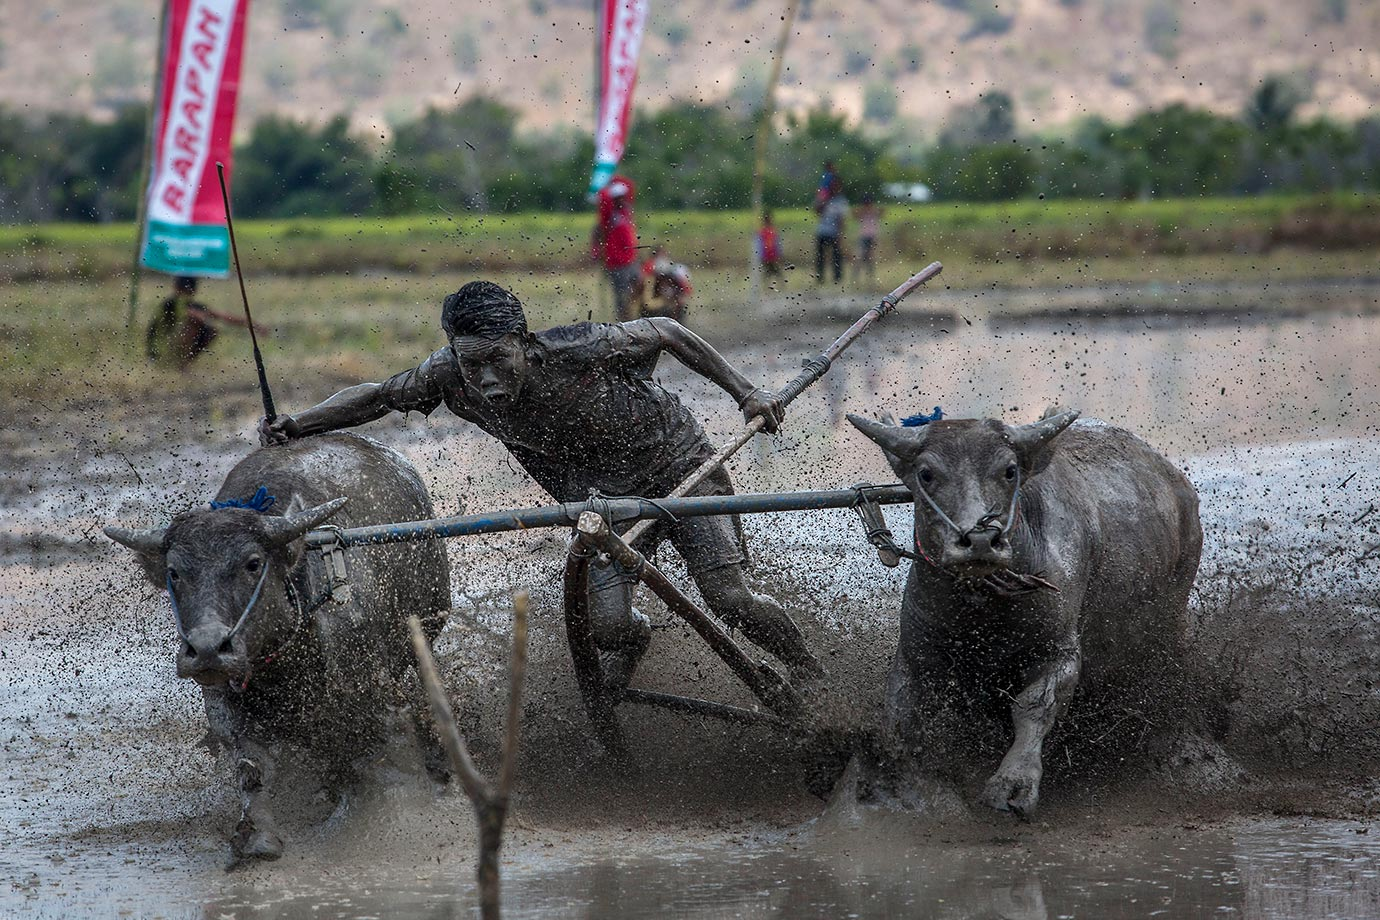 A jockey spurs the buffalos as they race during the Barapan Kebo or buffalo races in Indonesia.